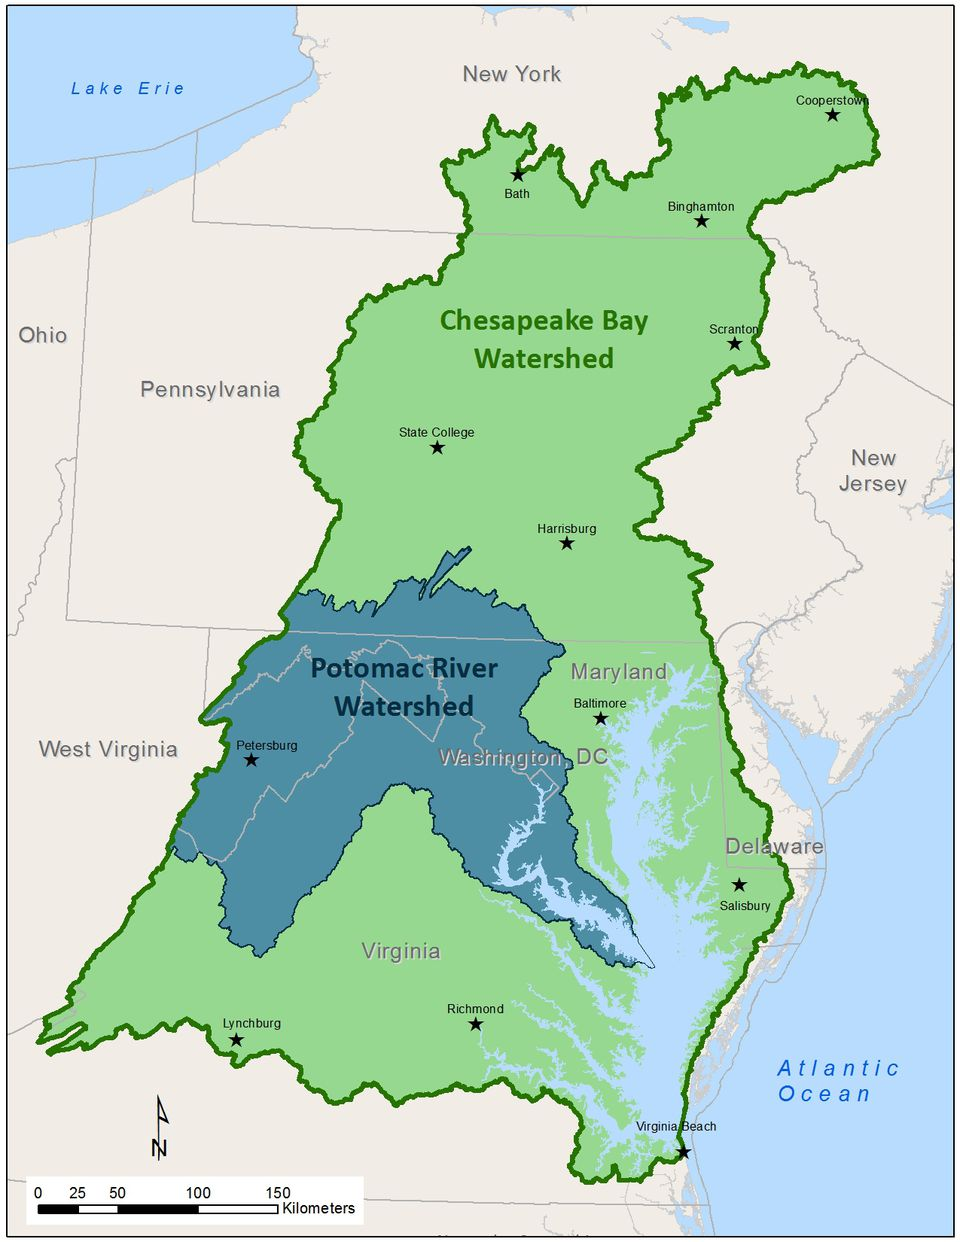 Potomac River Watershed